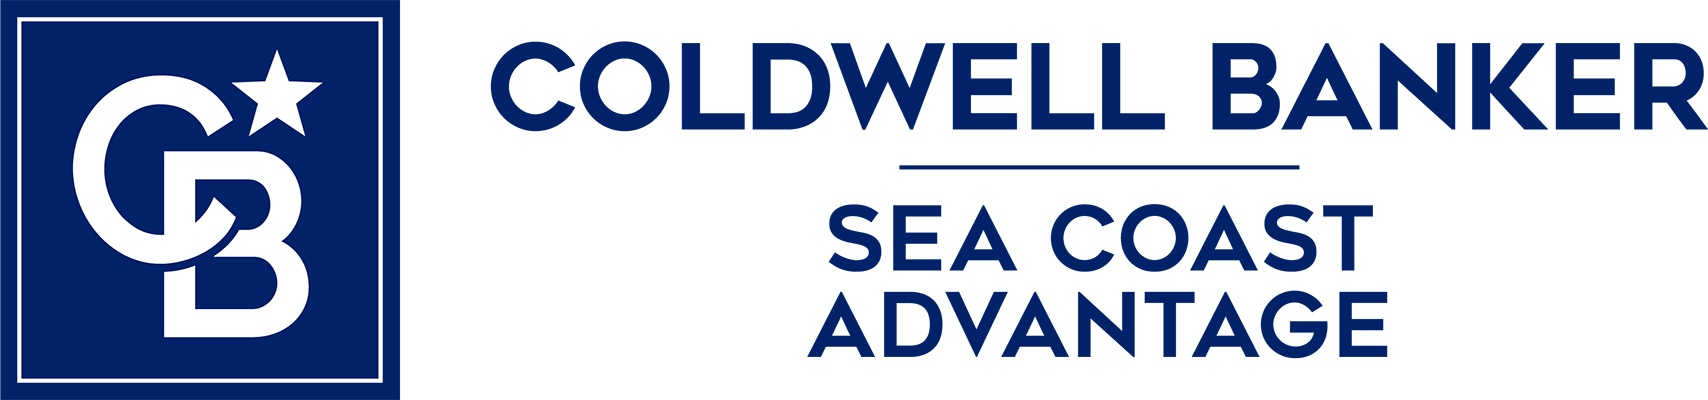 Tim Bush - Coldwell Banker Sea Coast Advantage Realty Logo